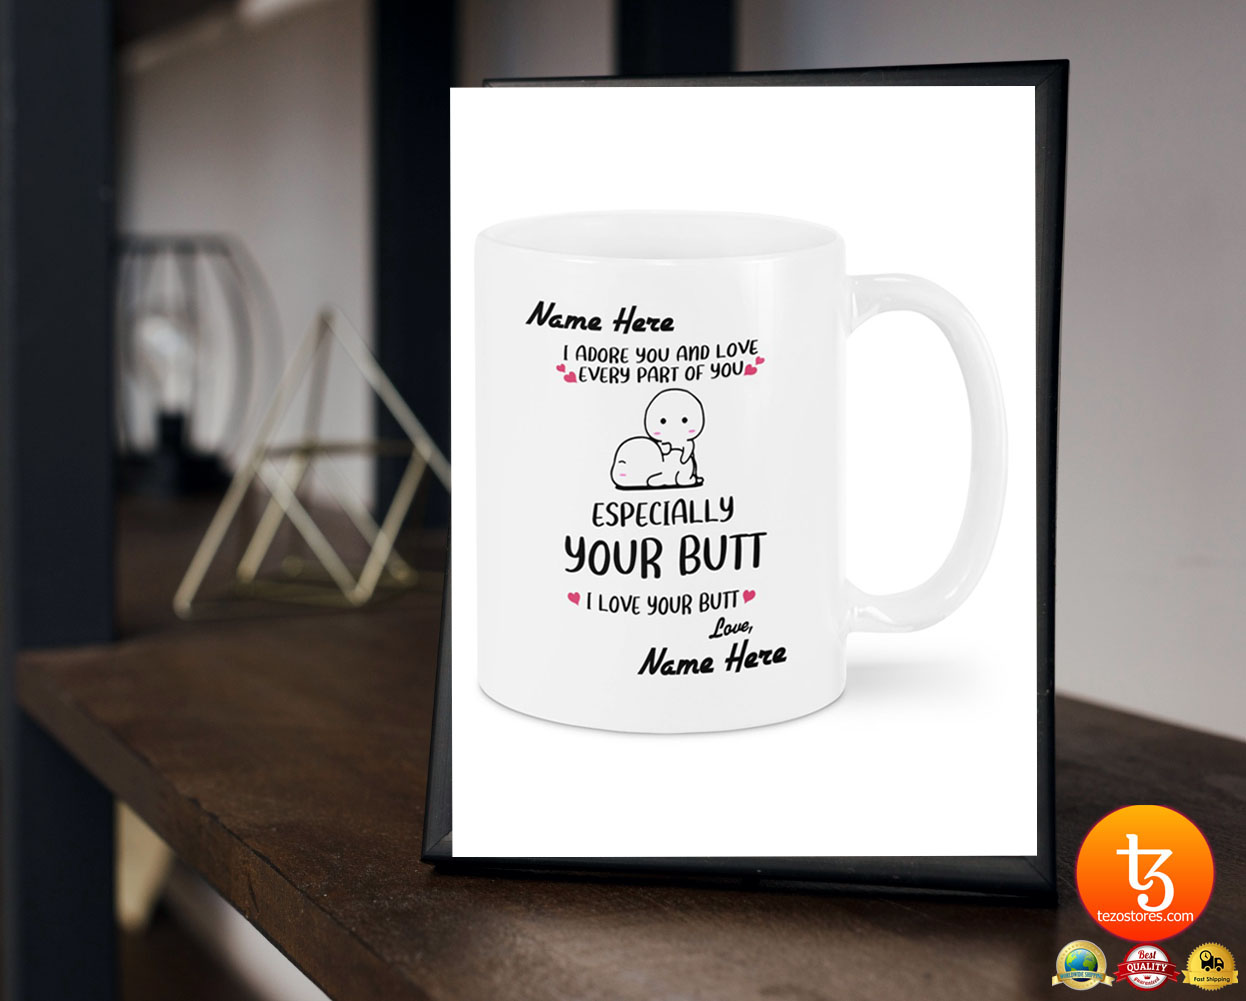 I adore you and love every part of you specially your butt custom personalized name mug 21